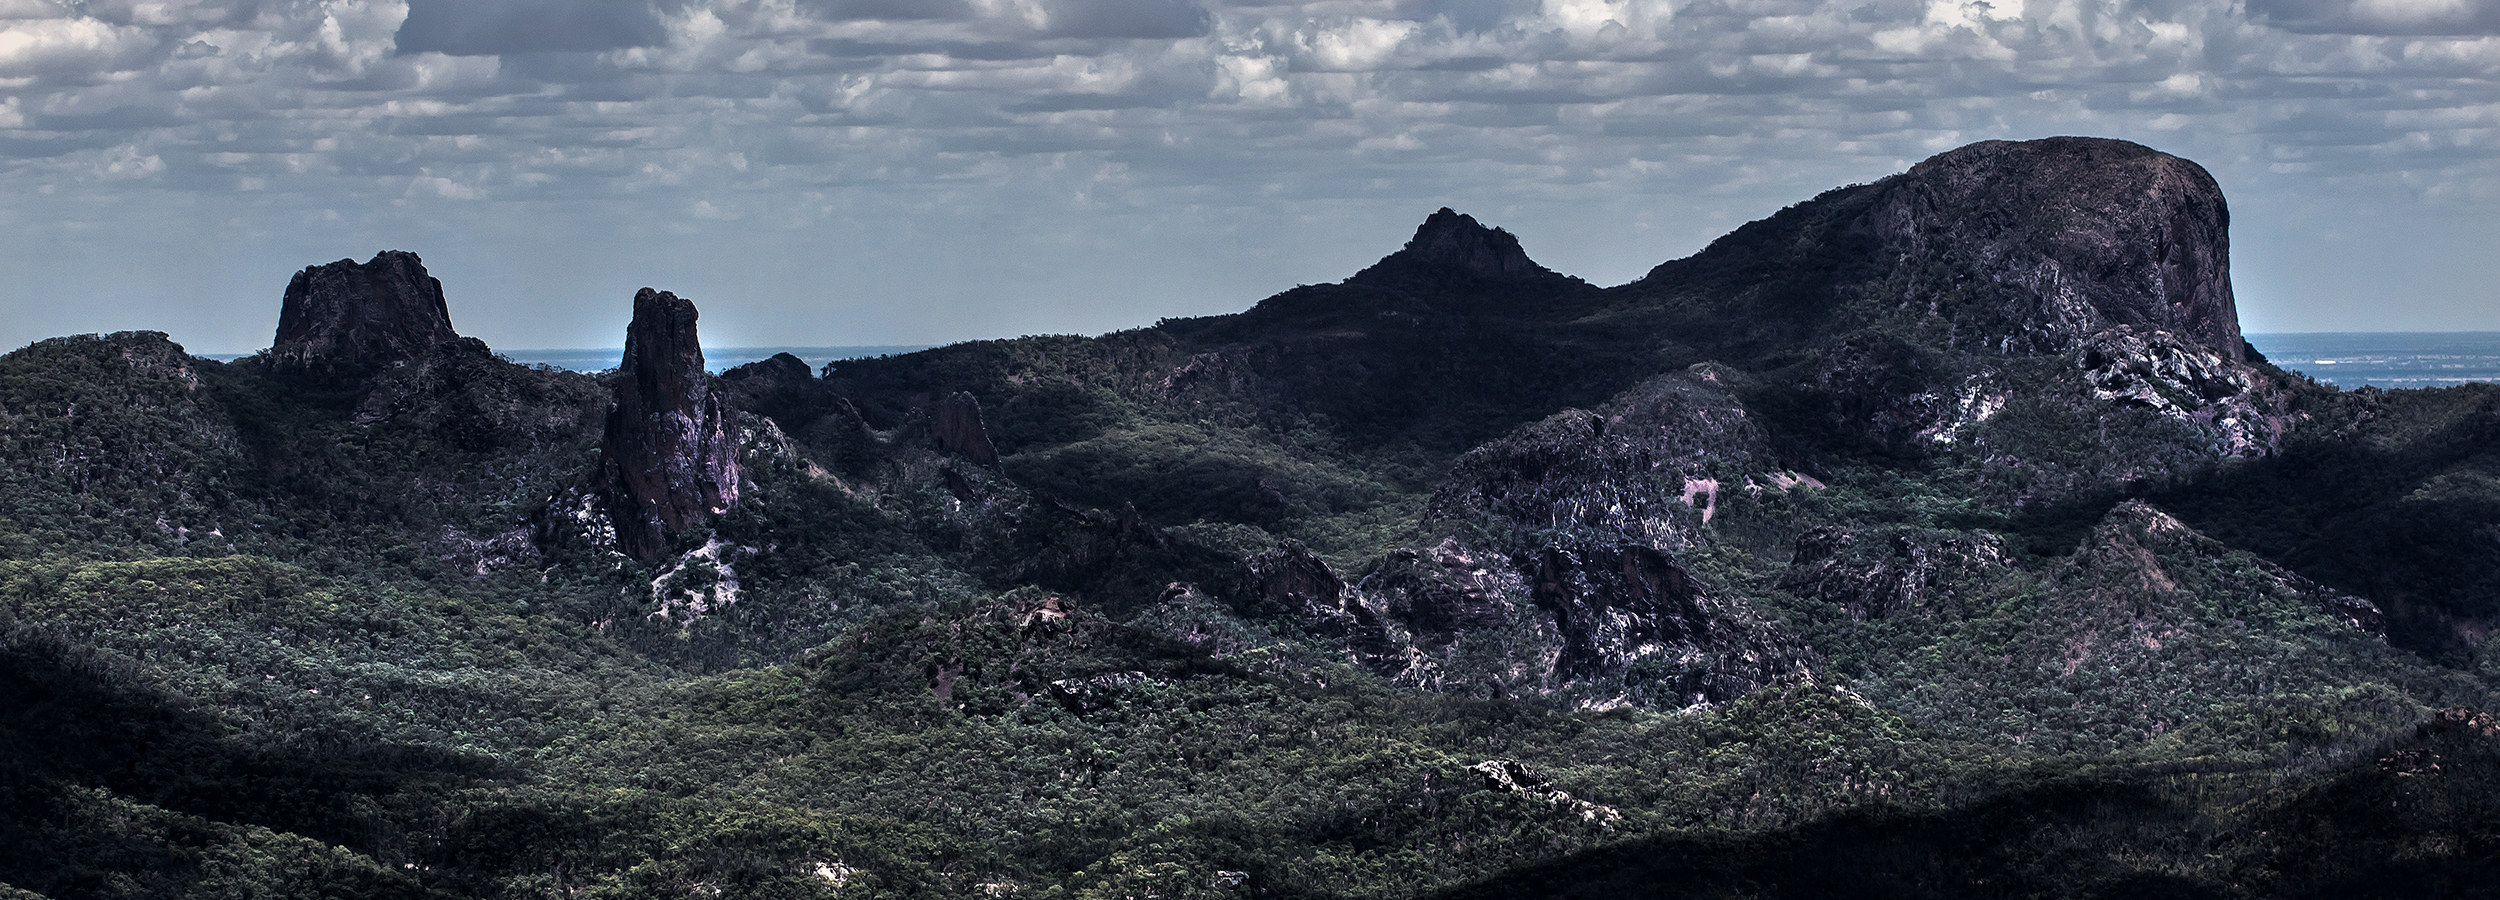 Warrumbungle National Park, Coonabarabran NSW(2)